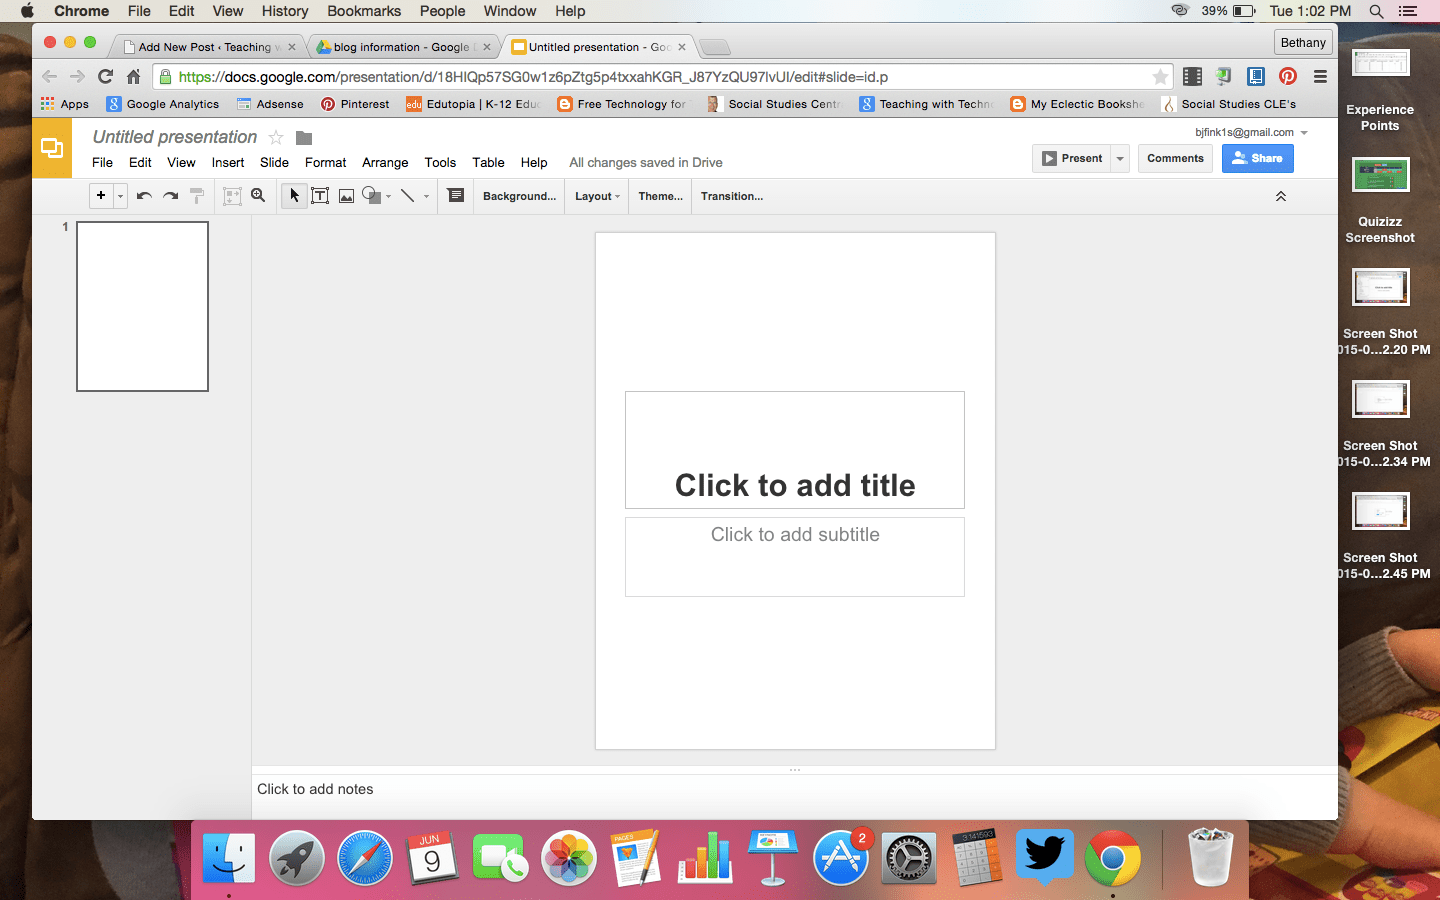 how to get a backround picture on google docs